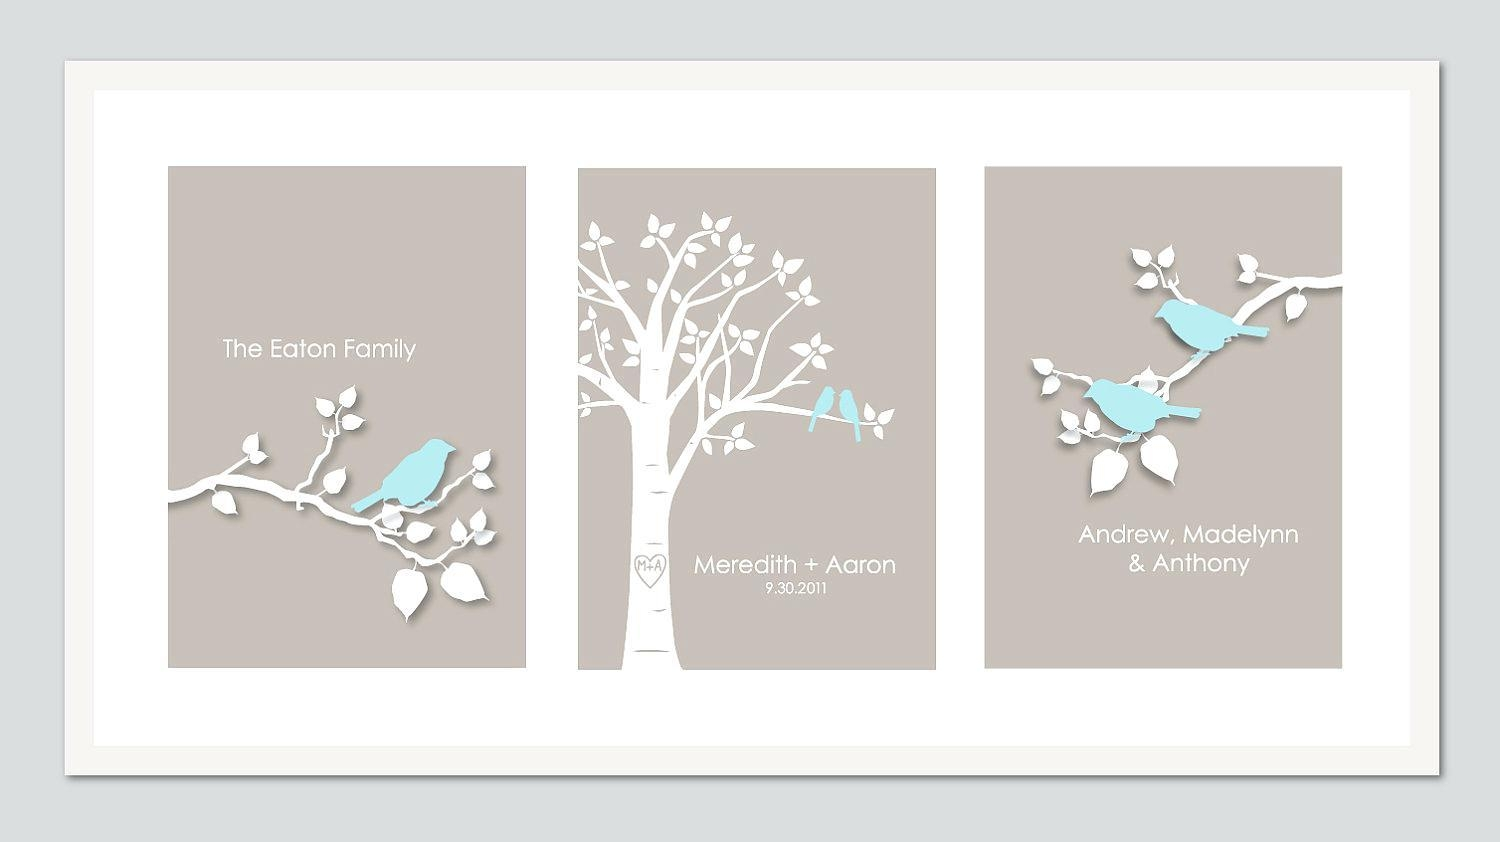 Wall Ideas : Personalized Family Wall Art Zoom Personalised Family Intended For Personalized Family Rules Wall Art (Image 16 of 20)